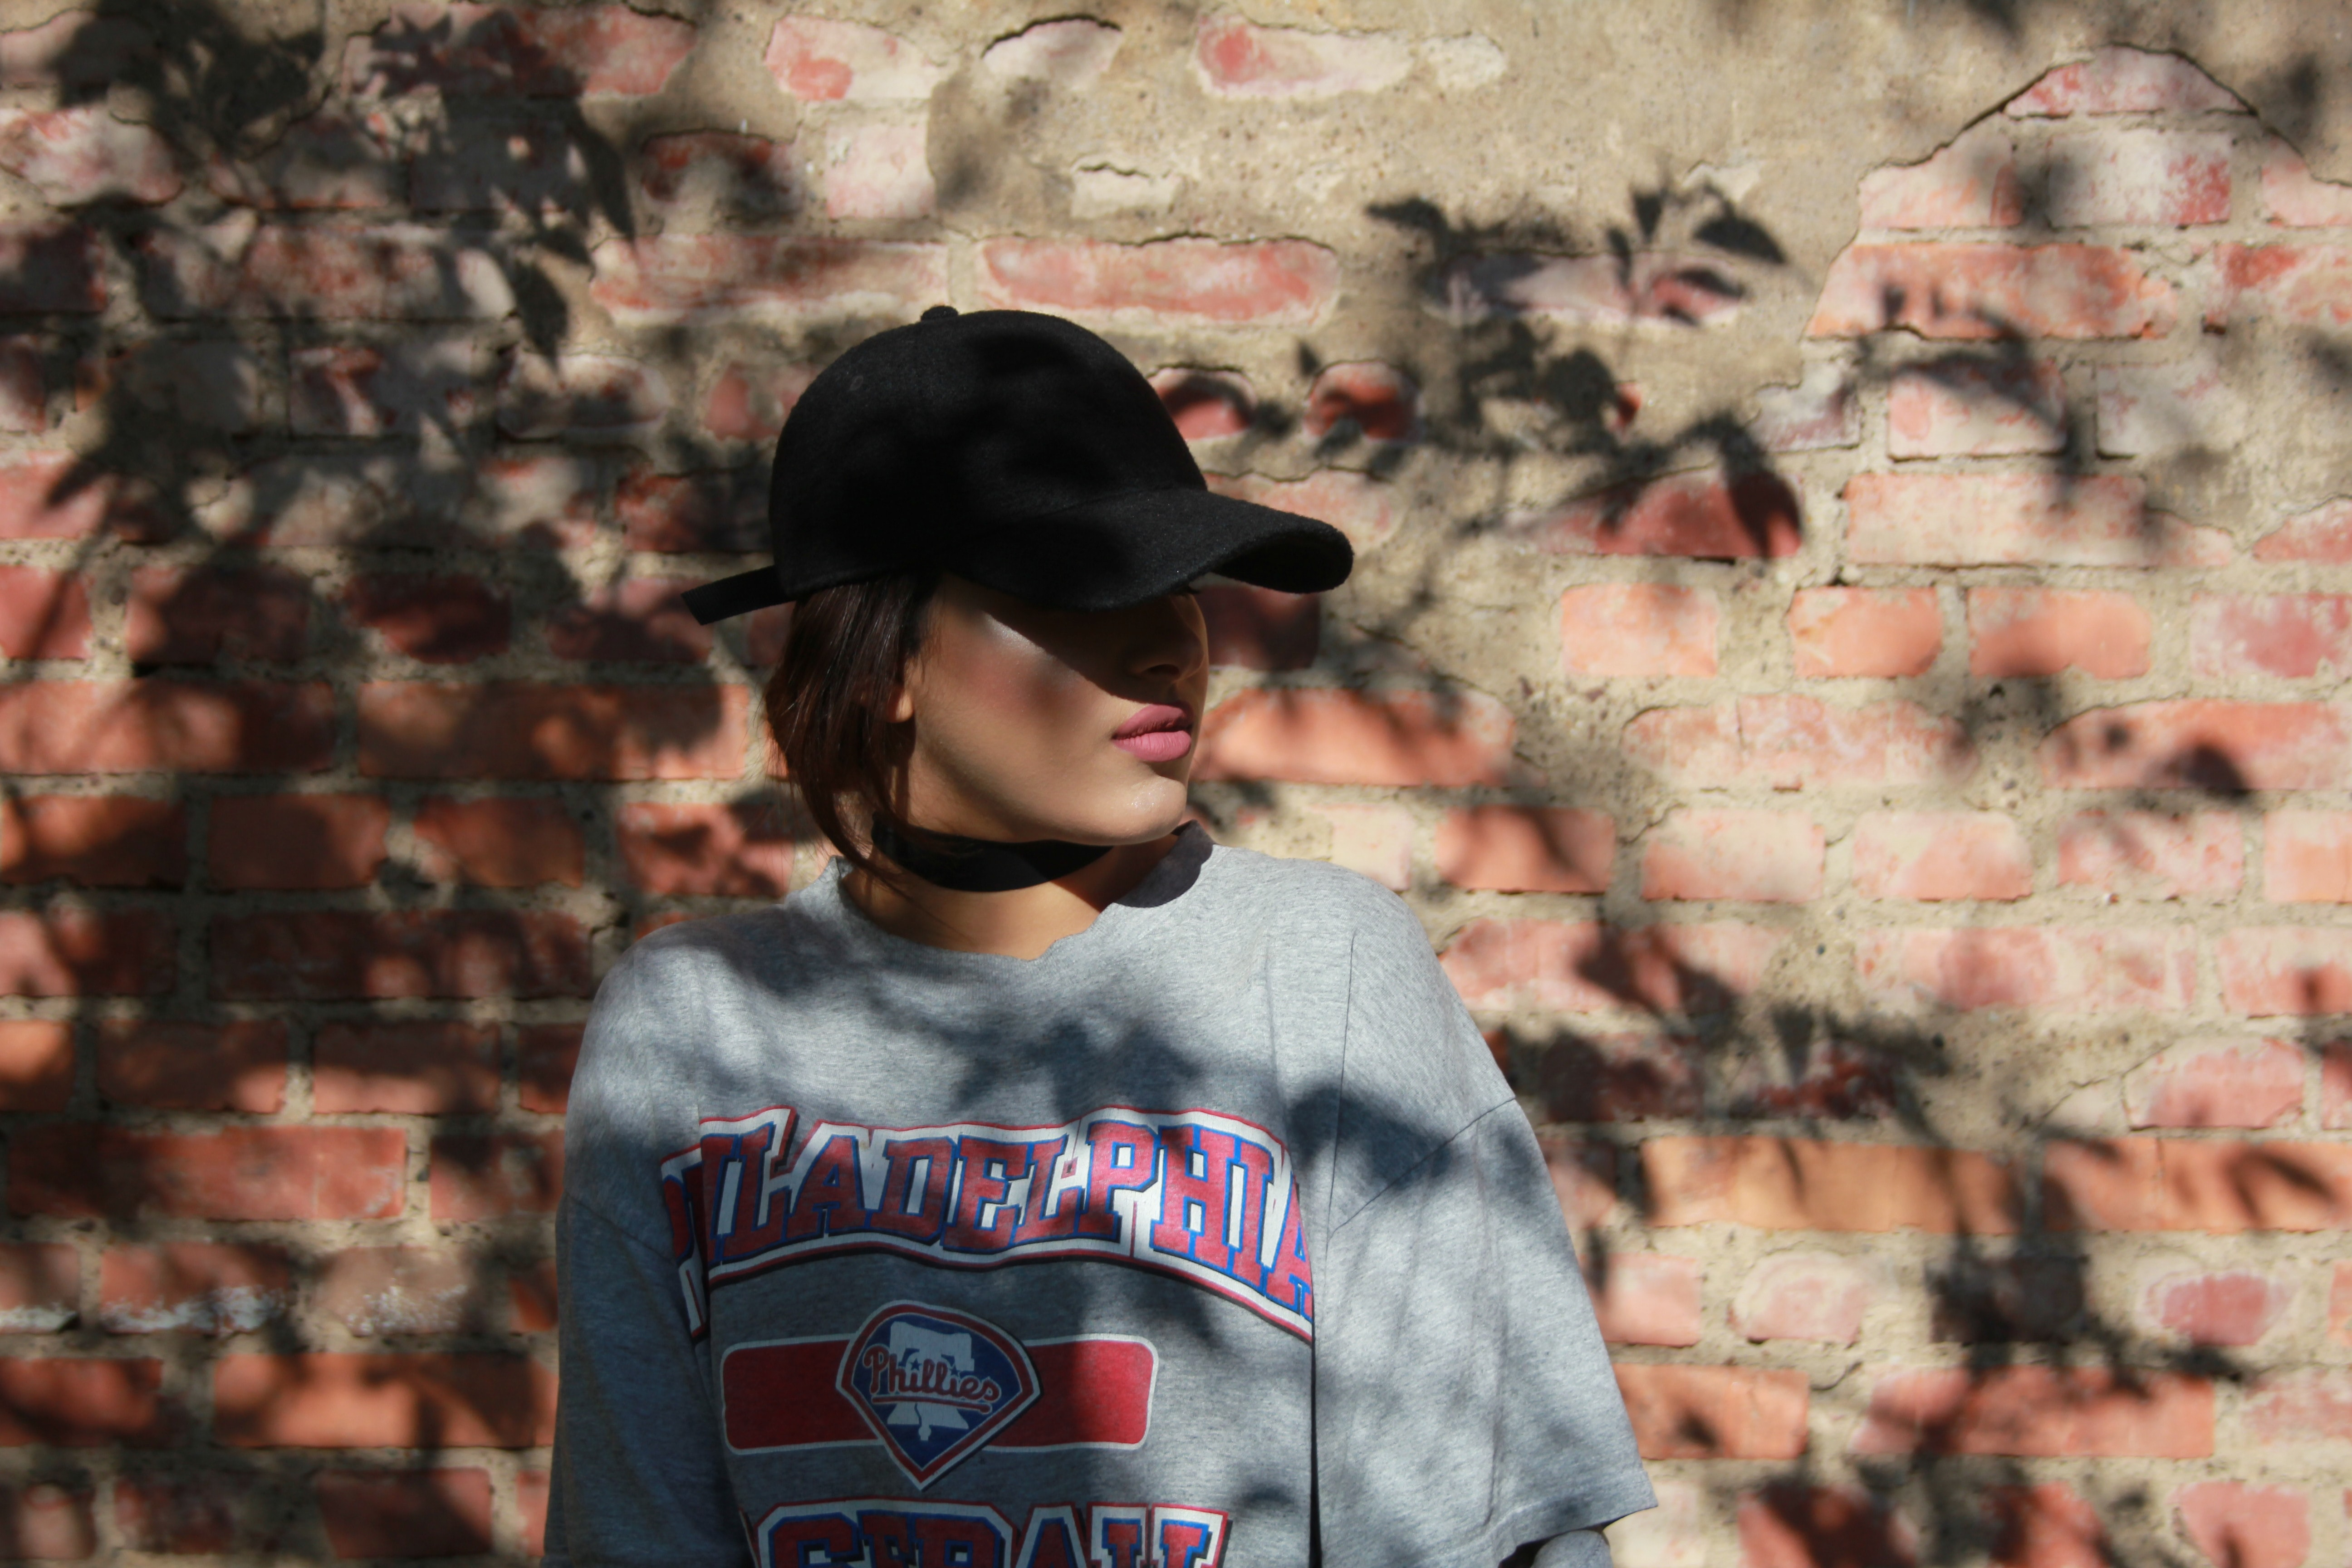 A lady wearing lipstick, cap and a t-shirt with logo on it standing by a brick wall